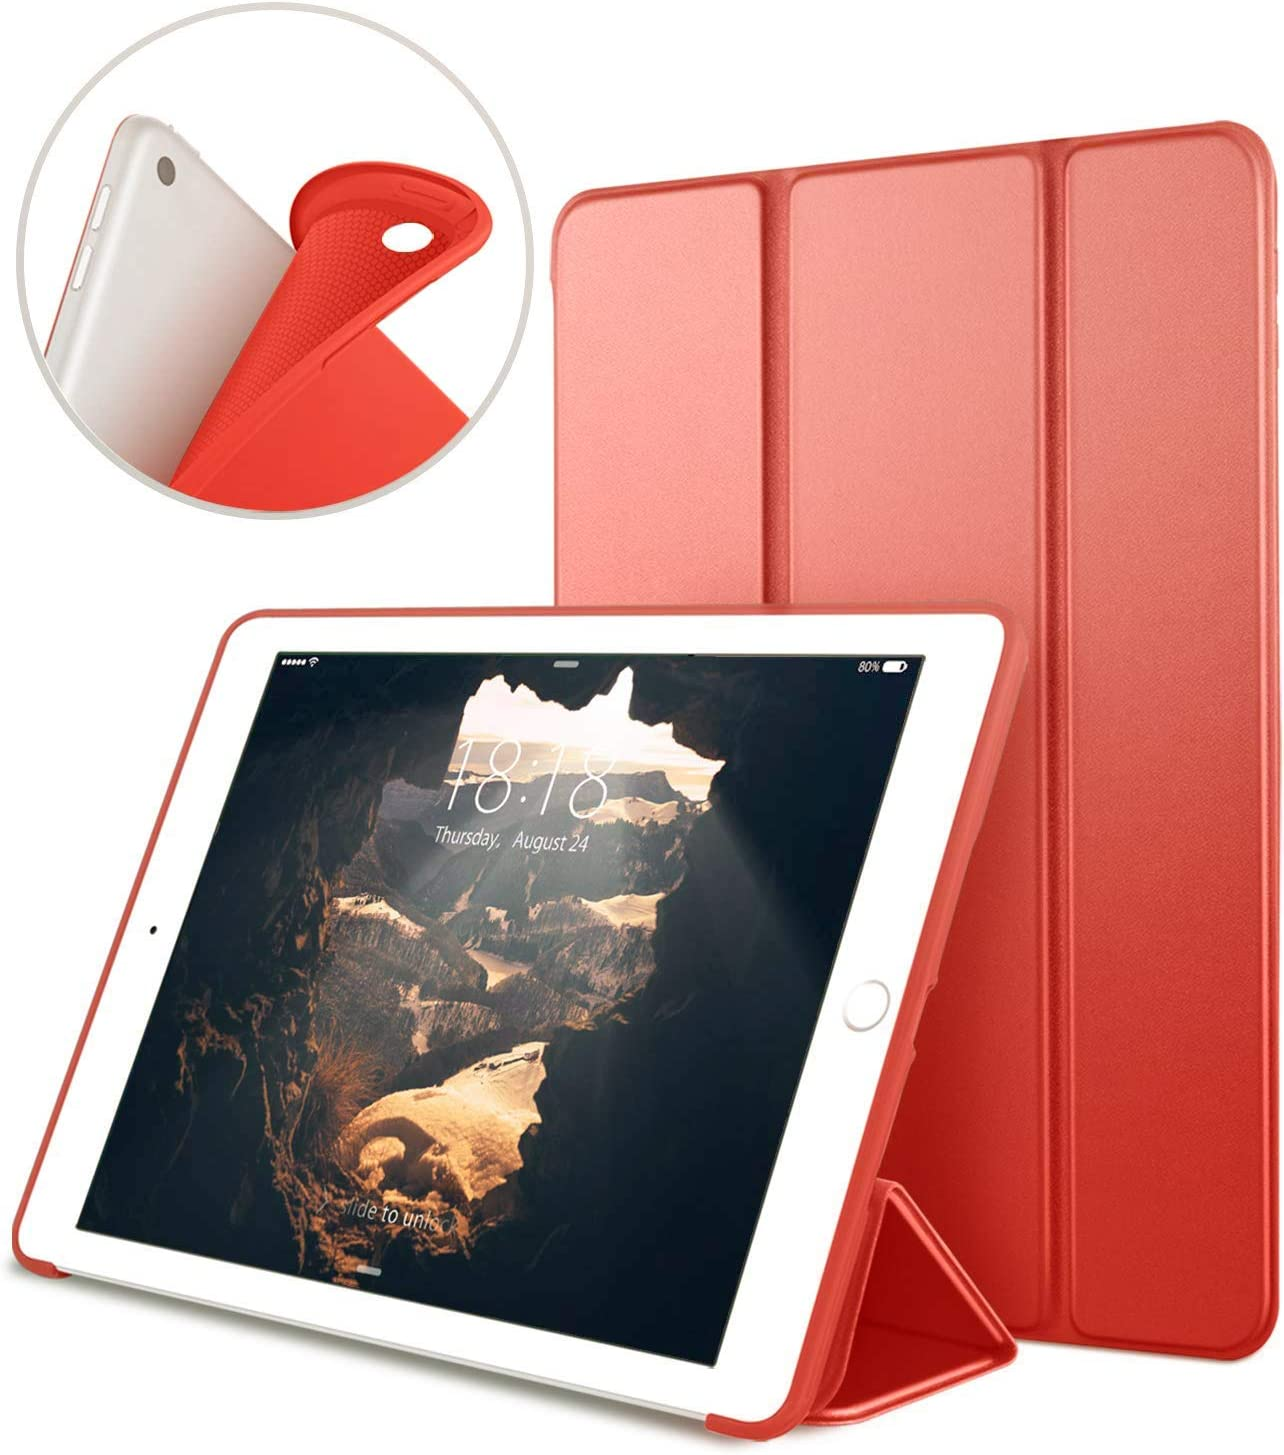 New iPad 9.7 inch 2018/2017 Case, VAGHVEO Lightweight Trifold Stand Smart iPad 6th Generation Cases [Auto Sleep/Wake] Soft TPU Back Cover for Apple 5th Generation (A1893/A1954/A1822/A1823), Red